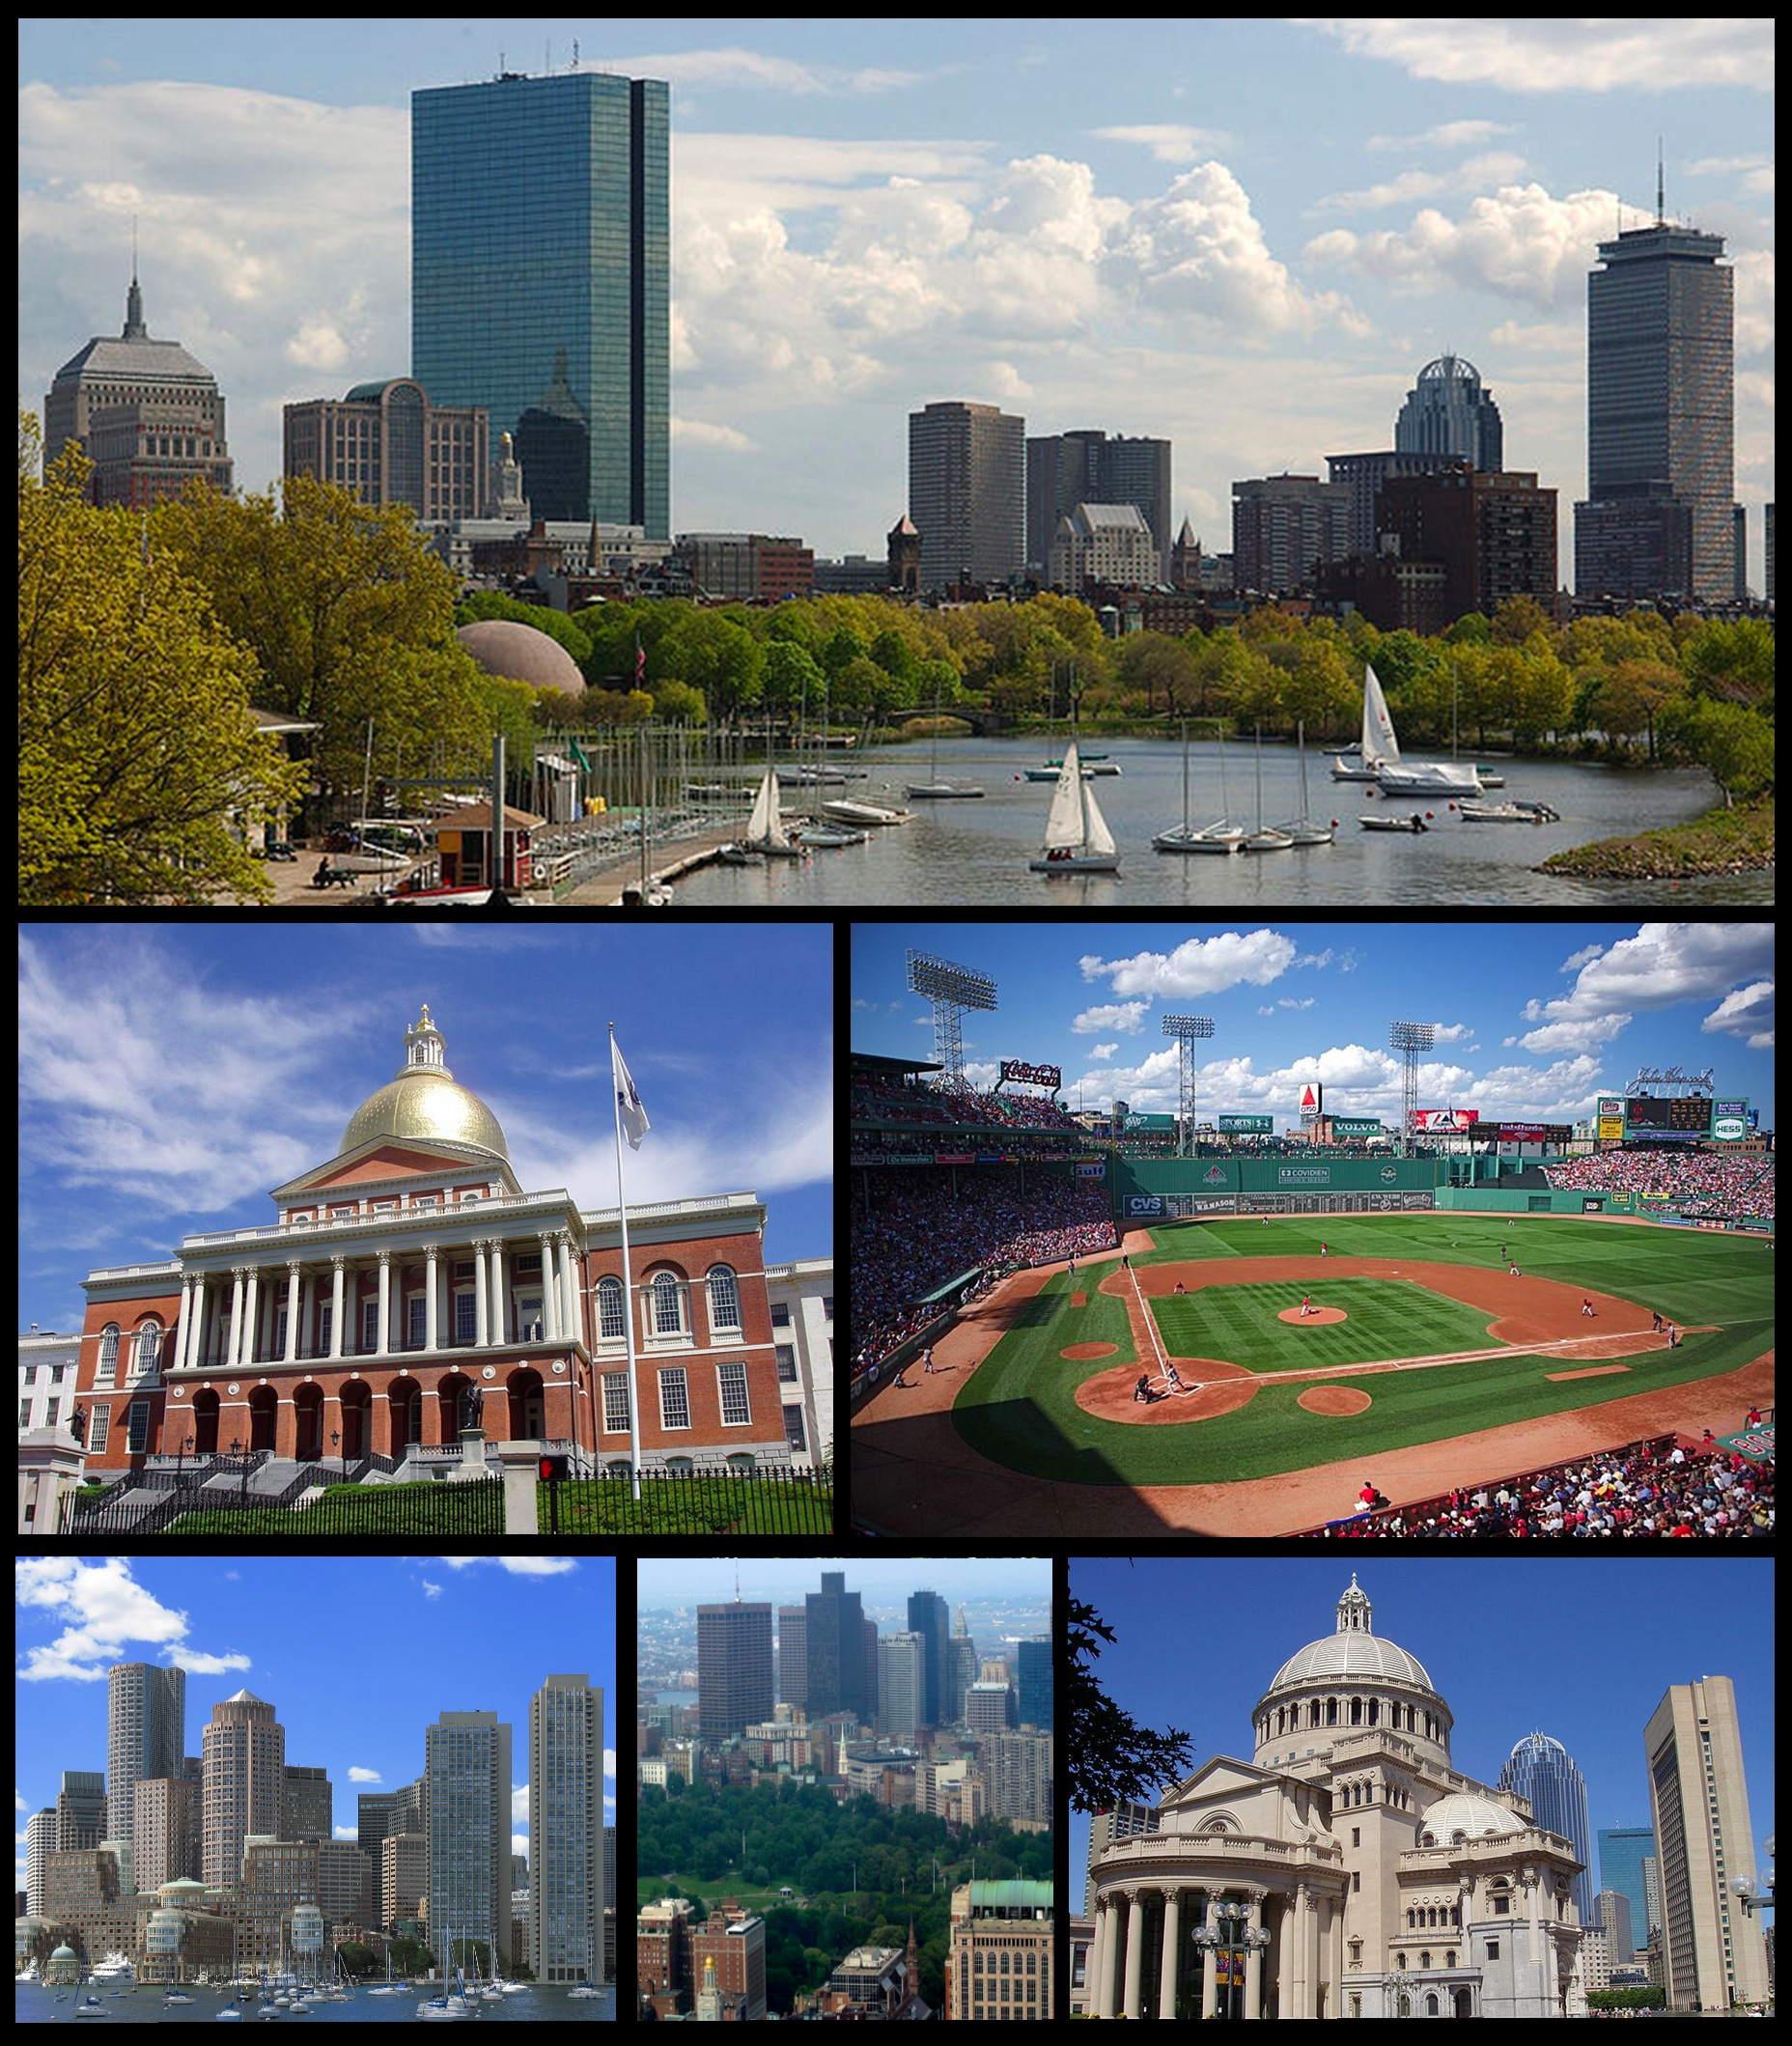 Boston Montage from Wikipedia